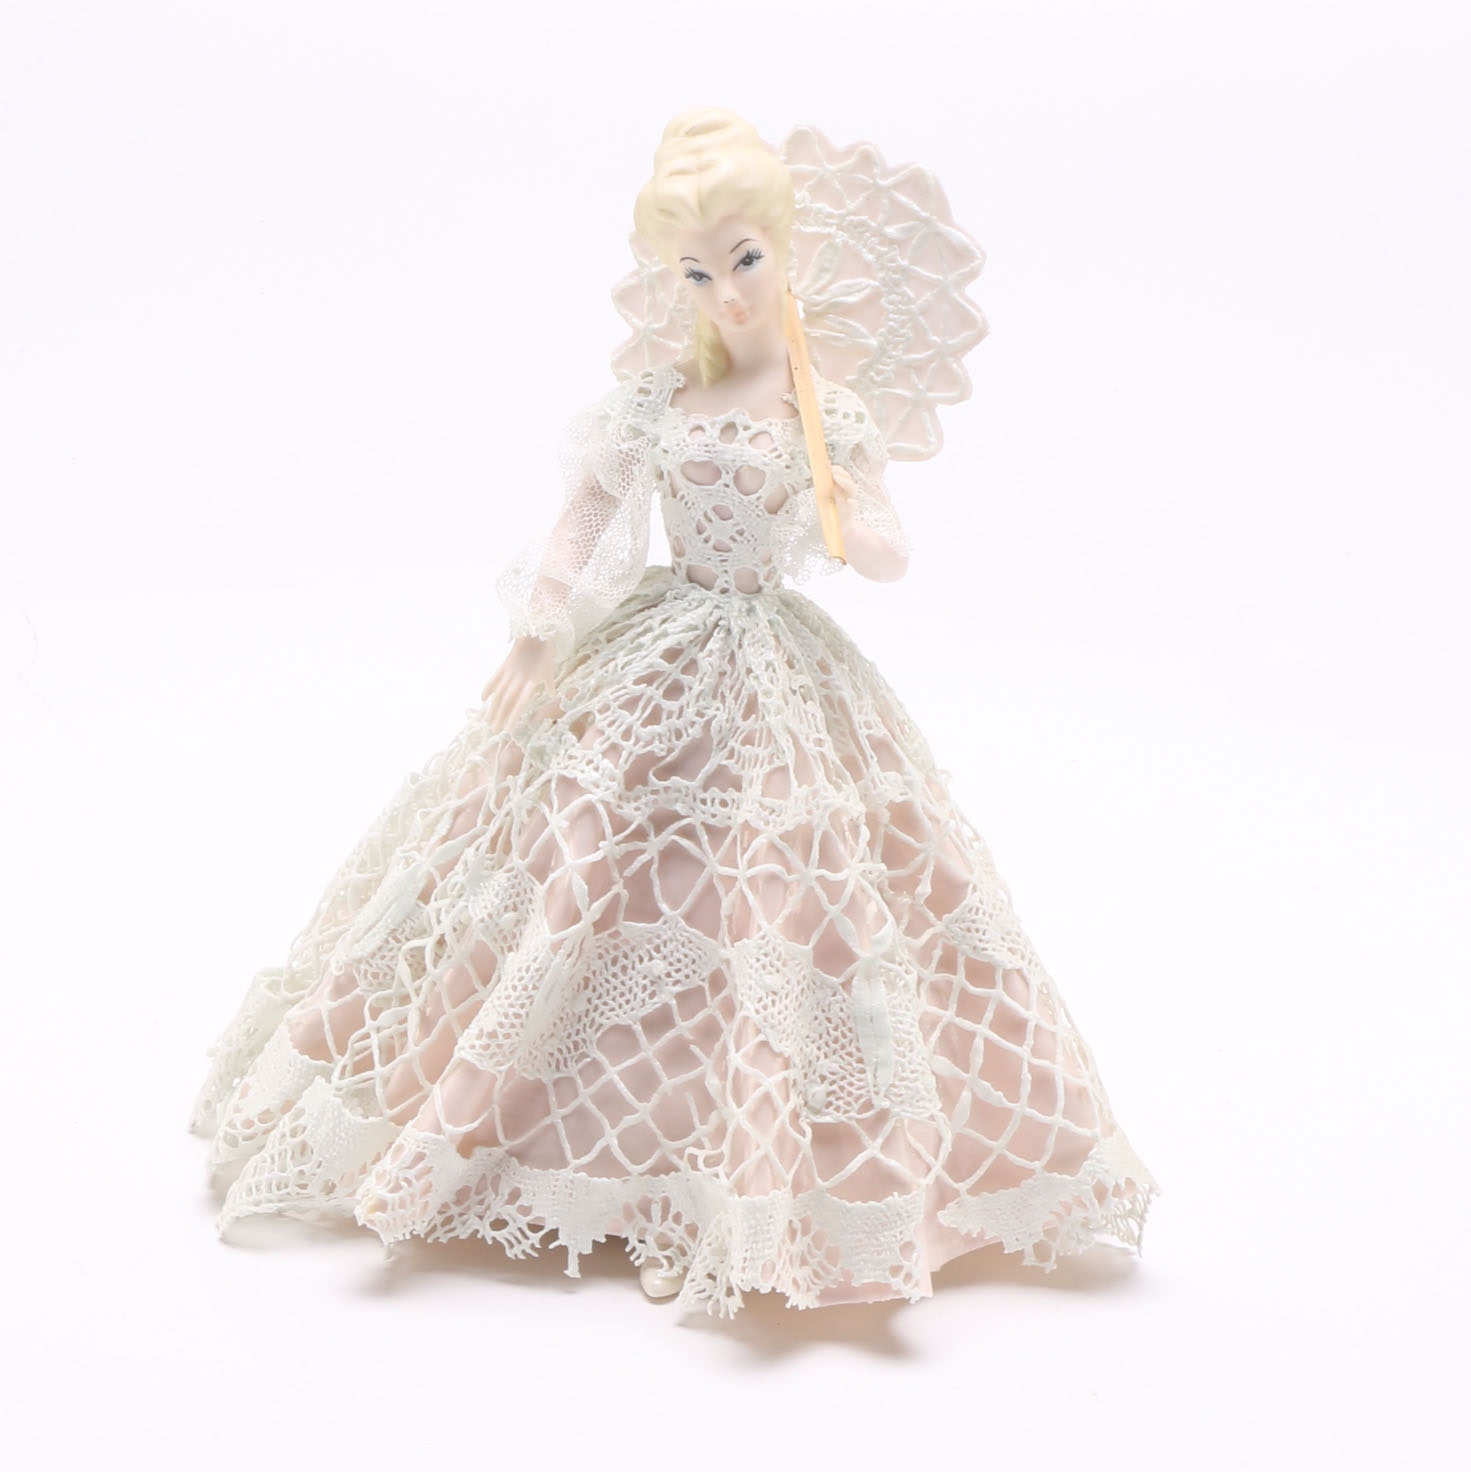 Ceramic Doll of Woman in Dress